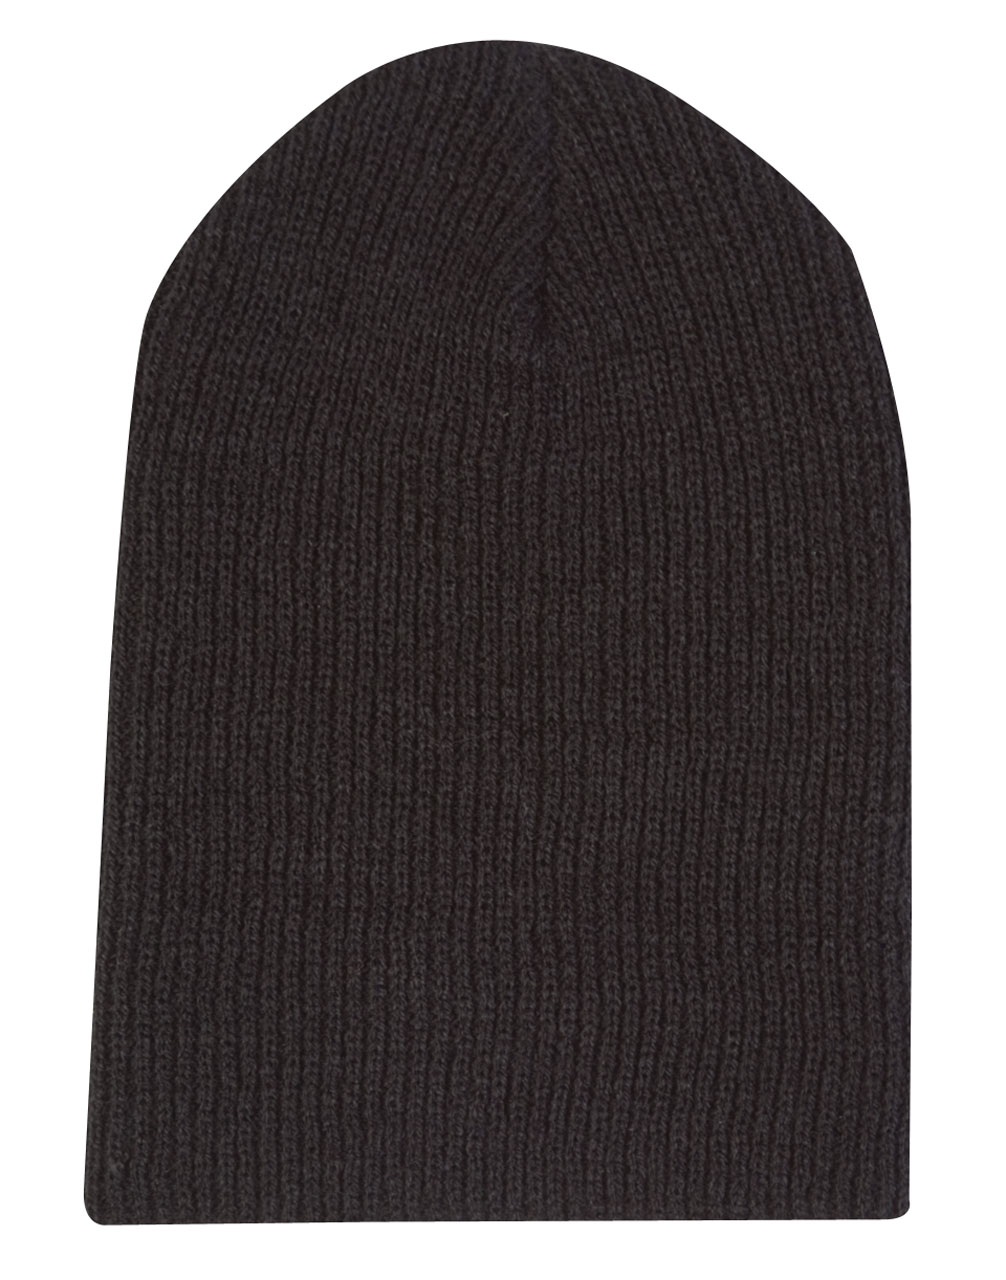 Picture of ATC Longer Length Knit Beanie